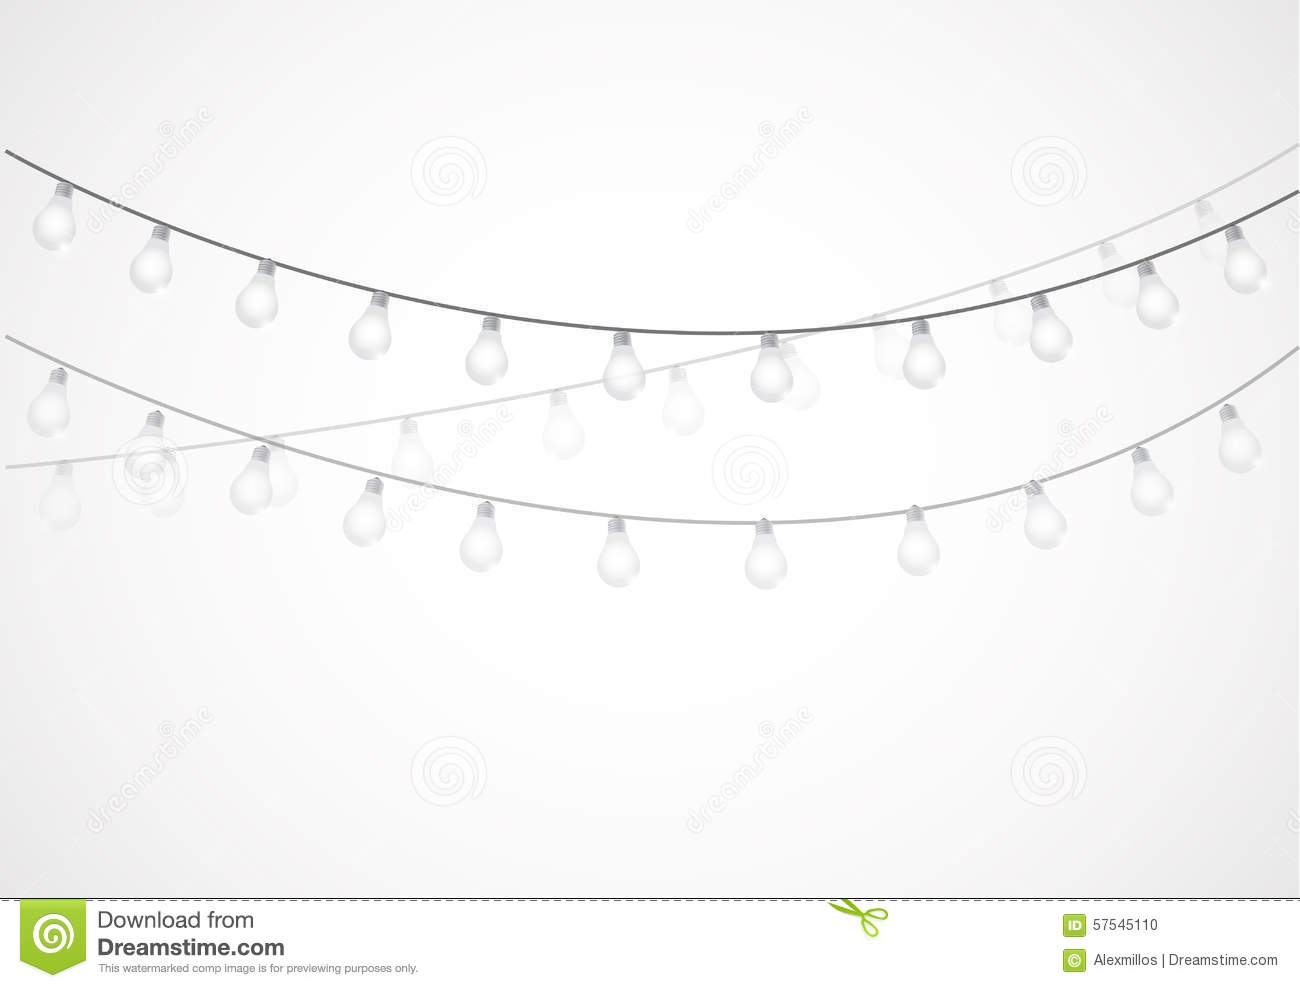 String Of White Lights Clipart : String Of Lights. Hanging Light Bulbs Stock Illustration - Image: 57545110